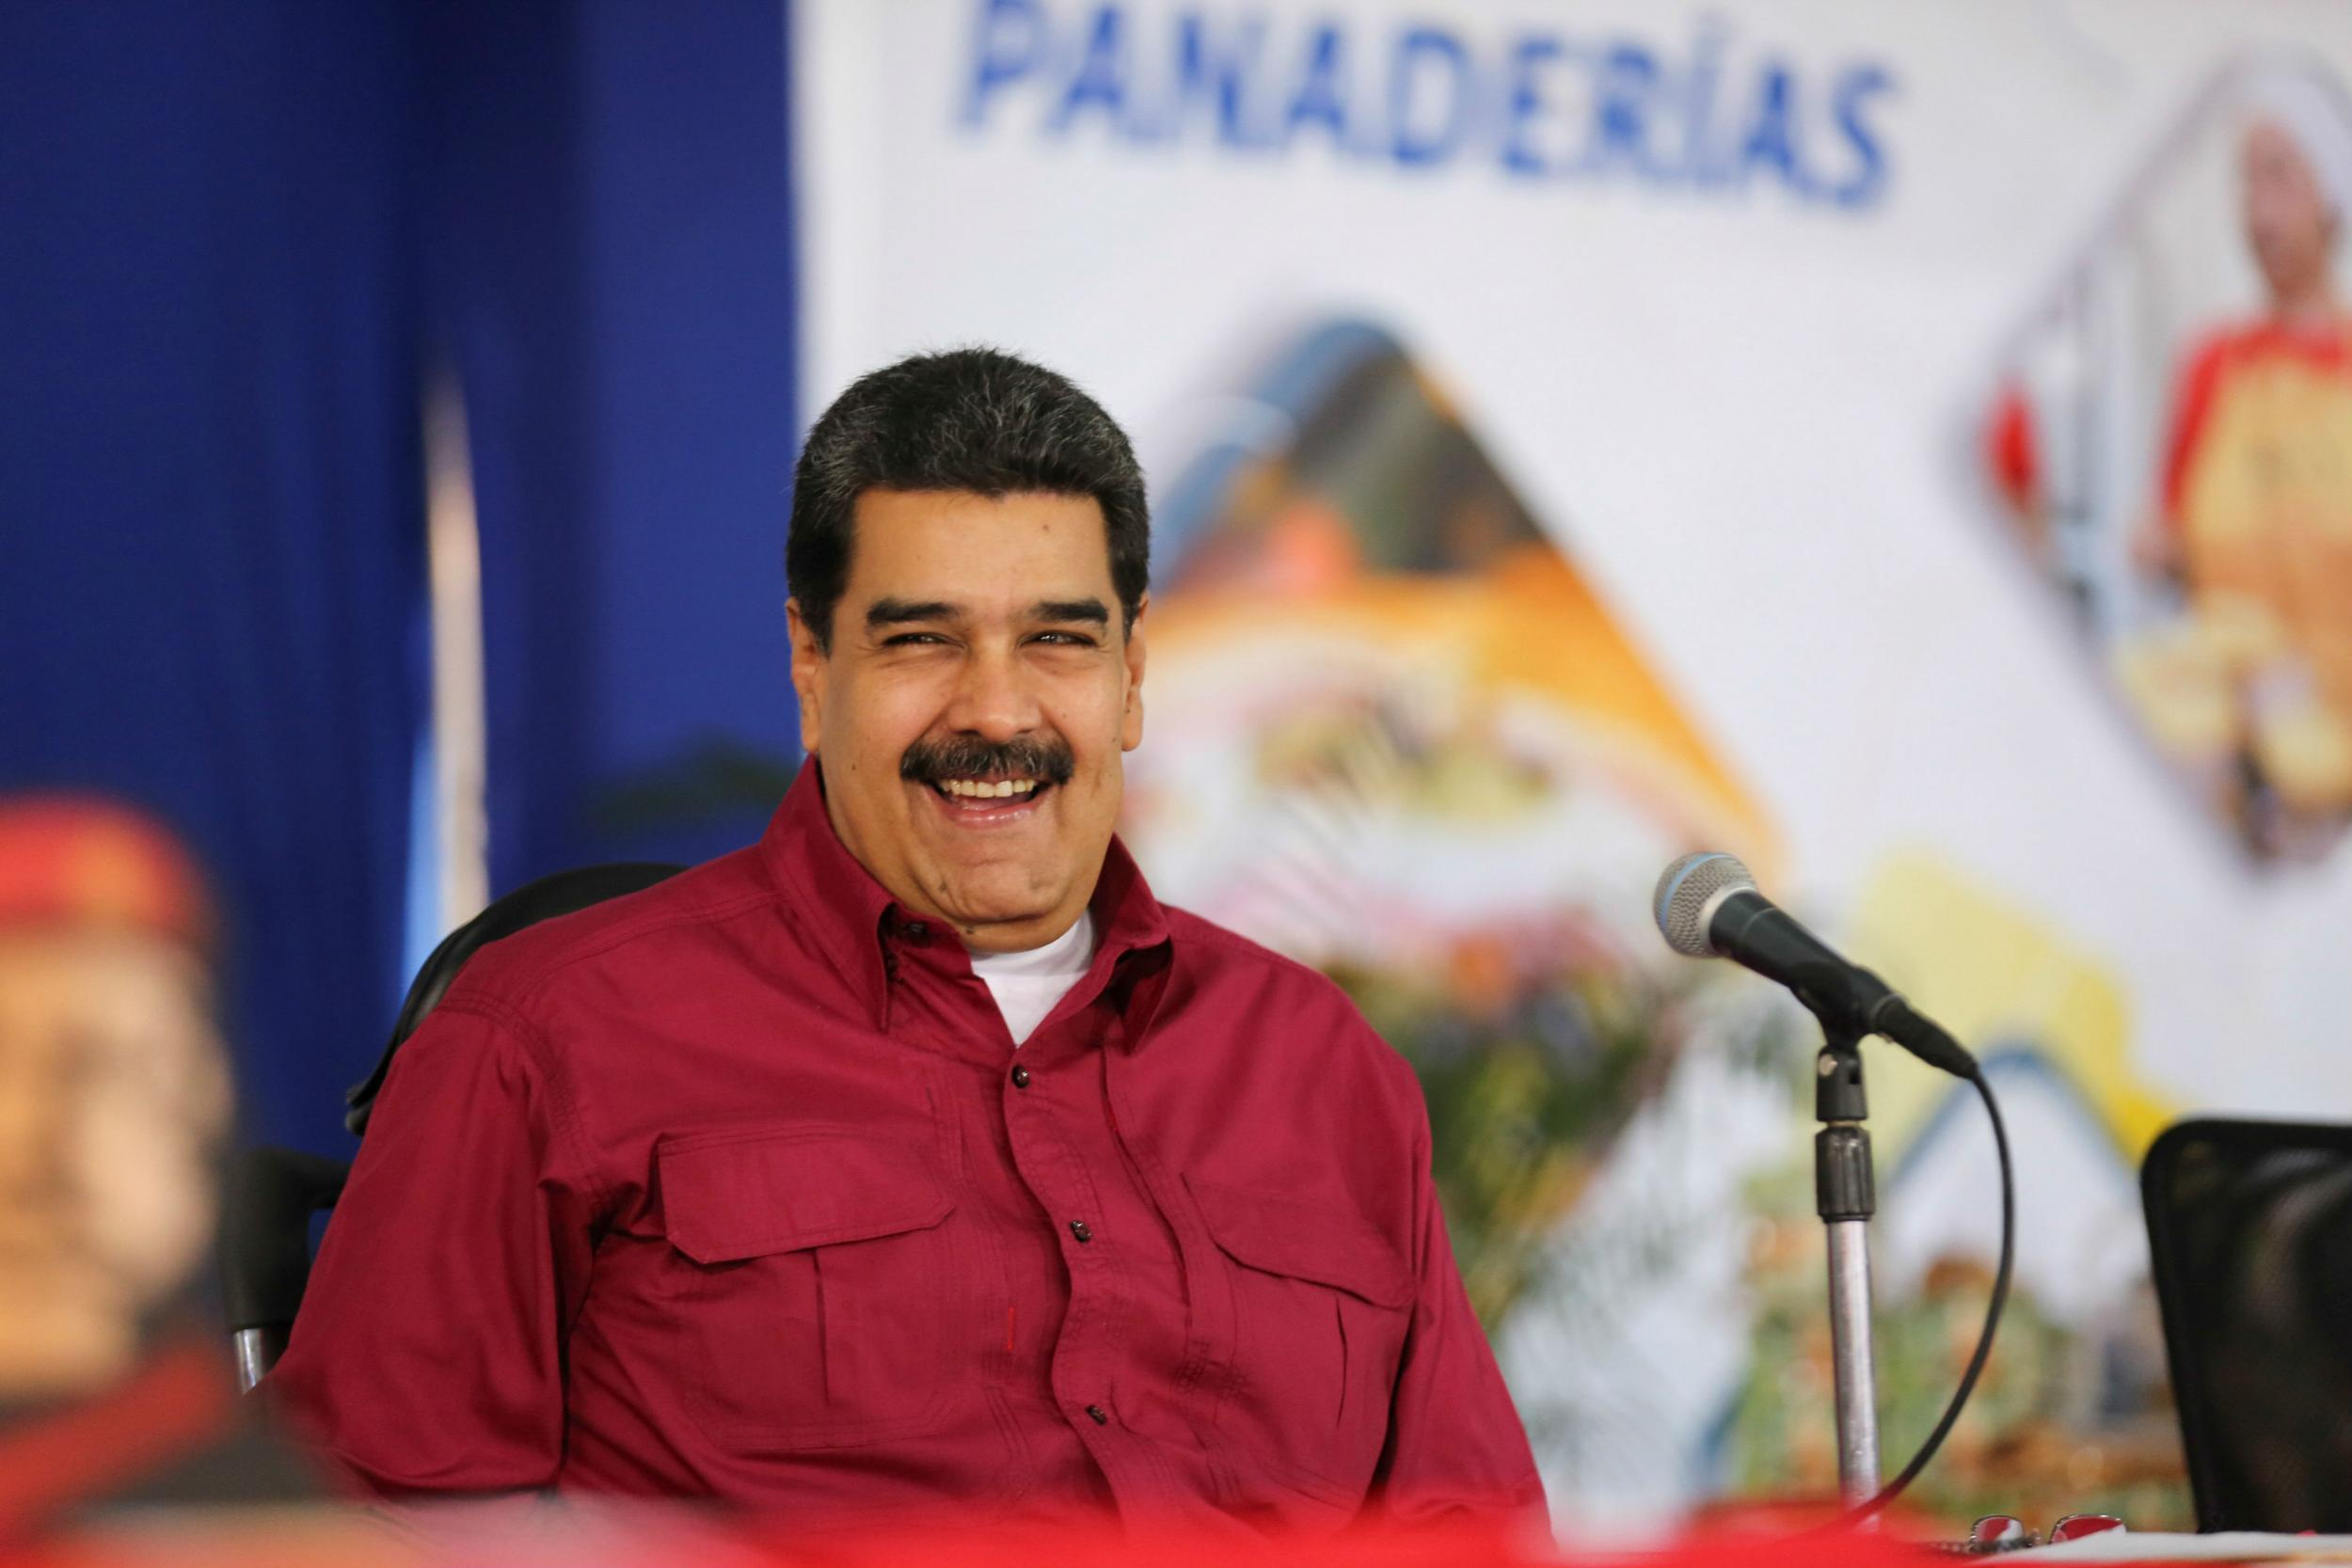 Venezuela's president accused of crimes against humanity